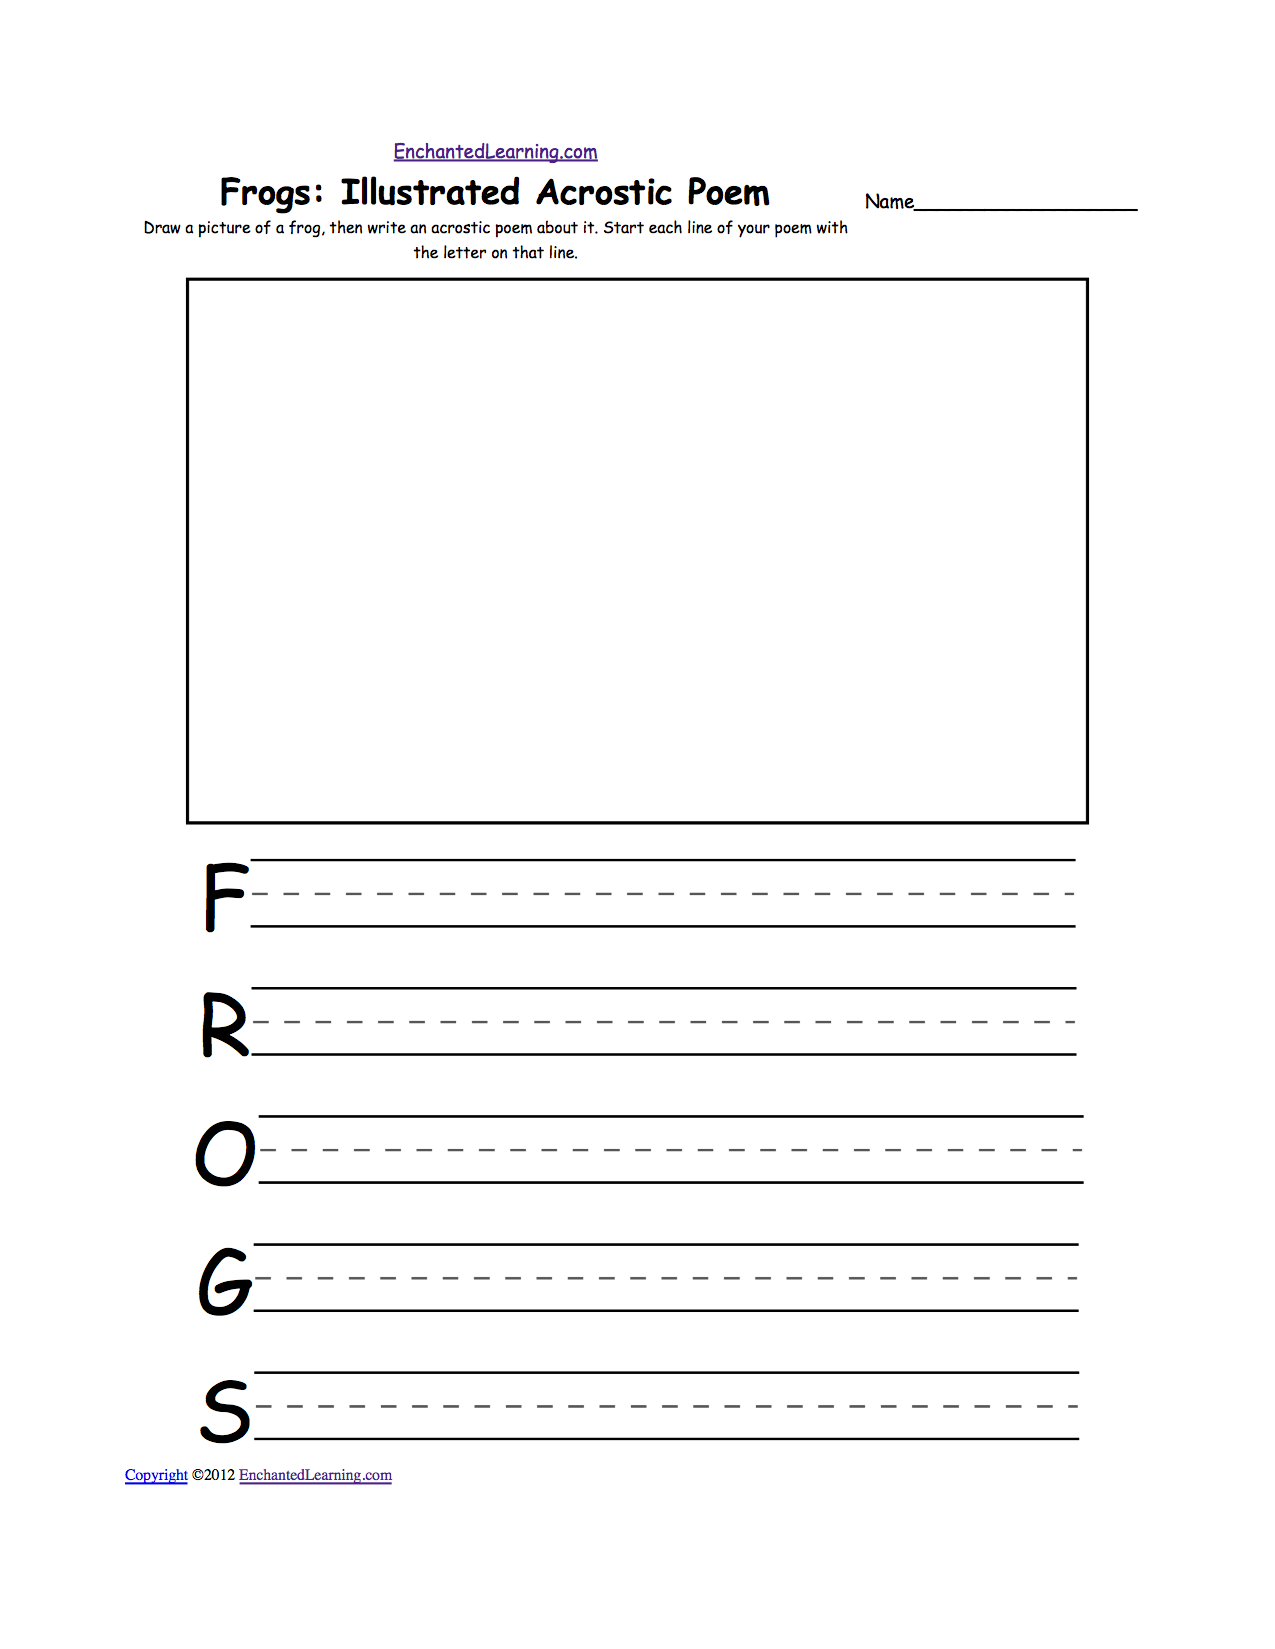 Free Worksheet Frog And Toad Together Worksheets frogs at enchantedlearning com